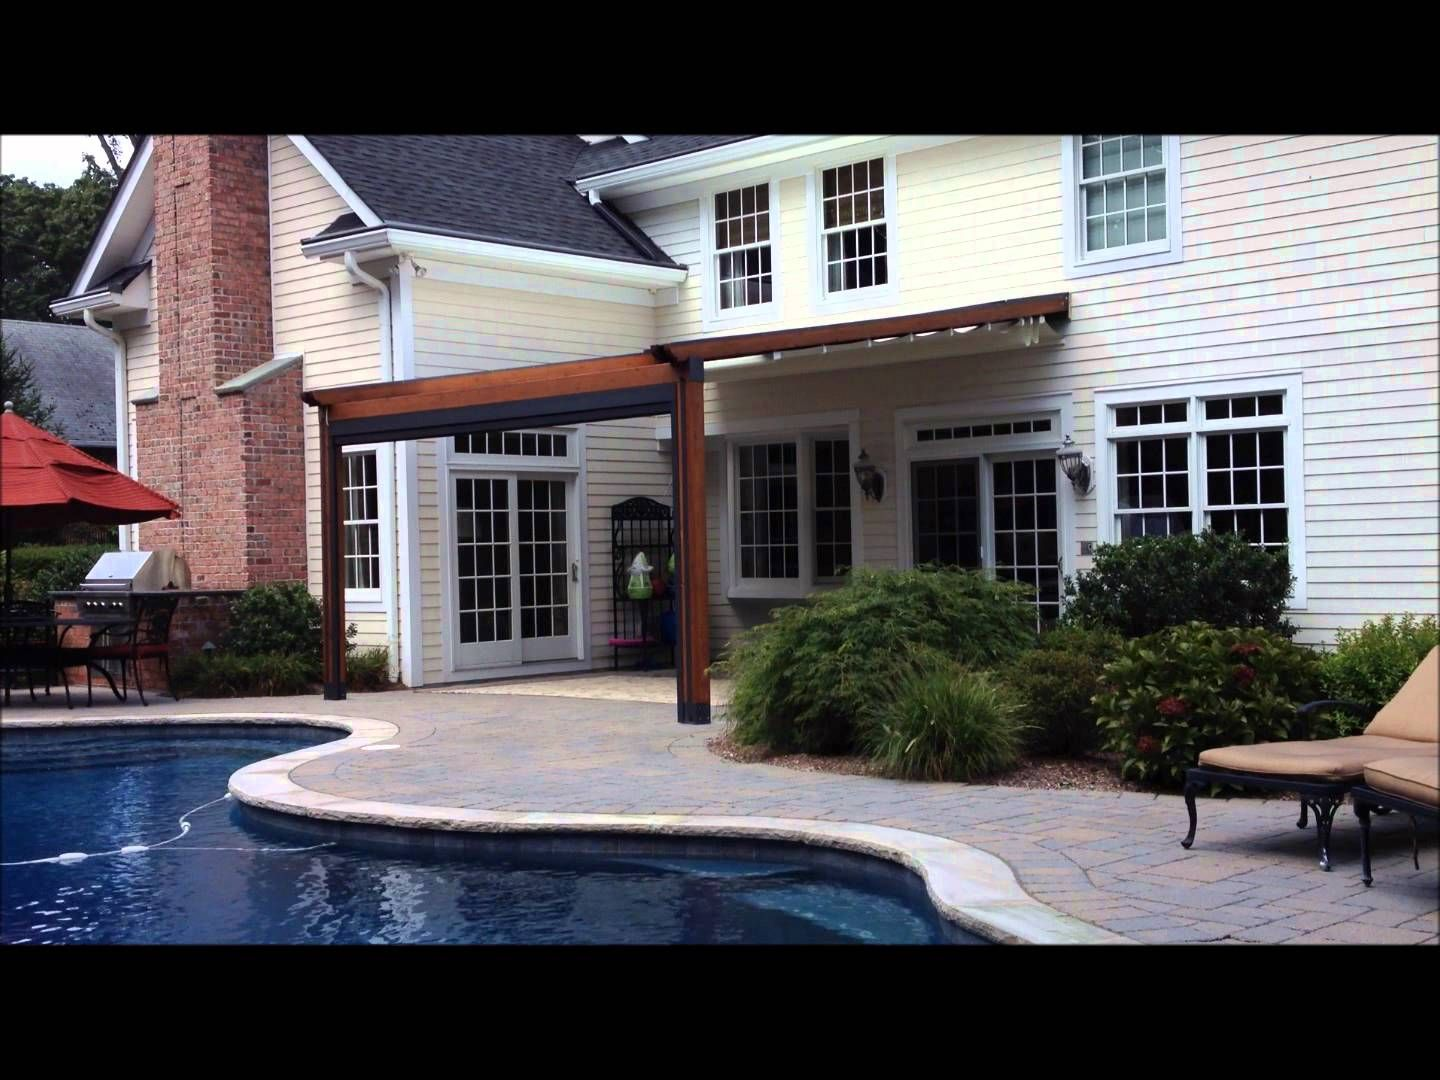 The Gennius A Waterproof Retractable Awning By Durasol Awnings Was Selected This Homeowner For Aesthetics And Function With Solar Screen Drop Shade